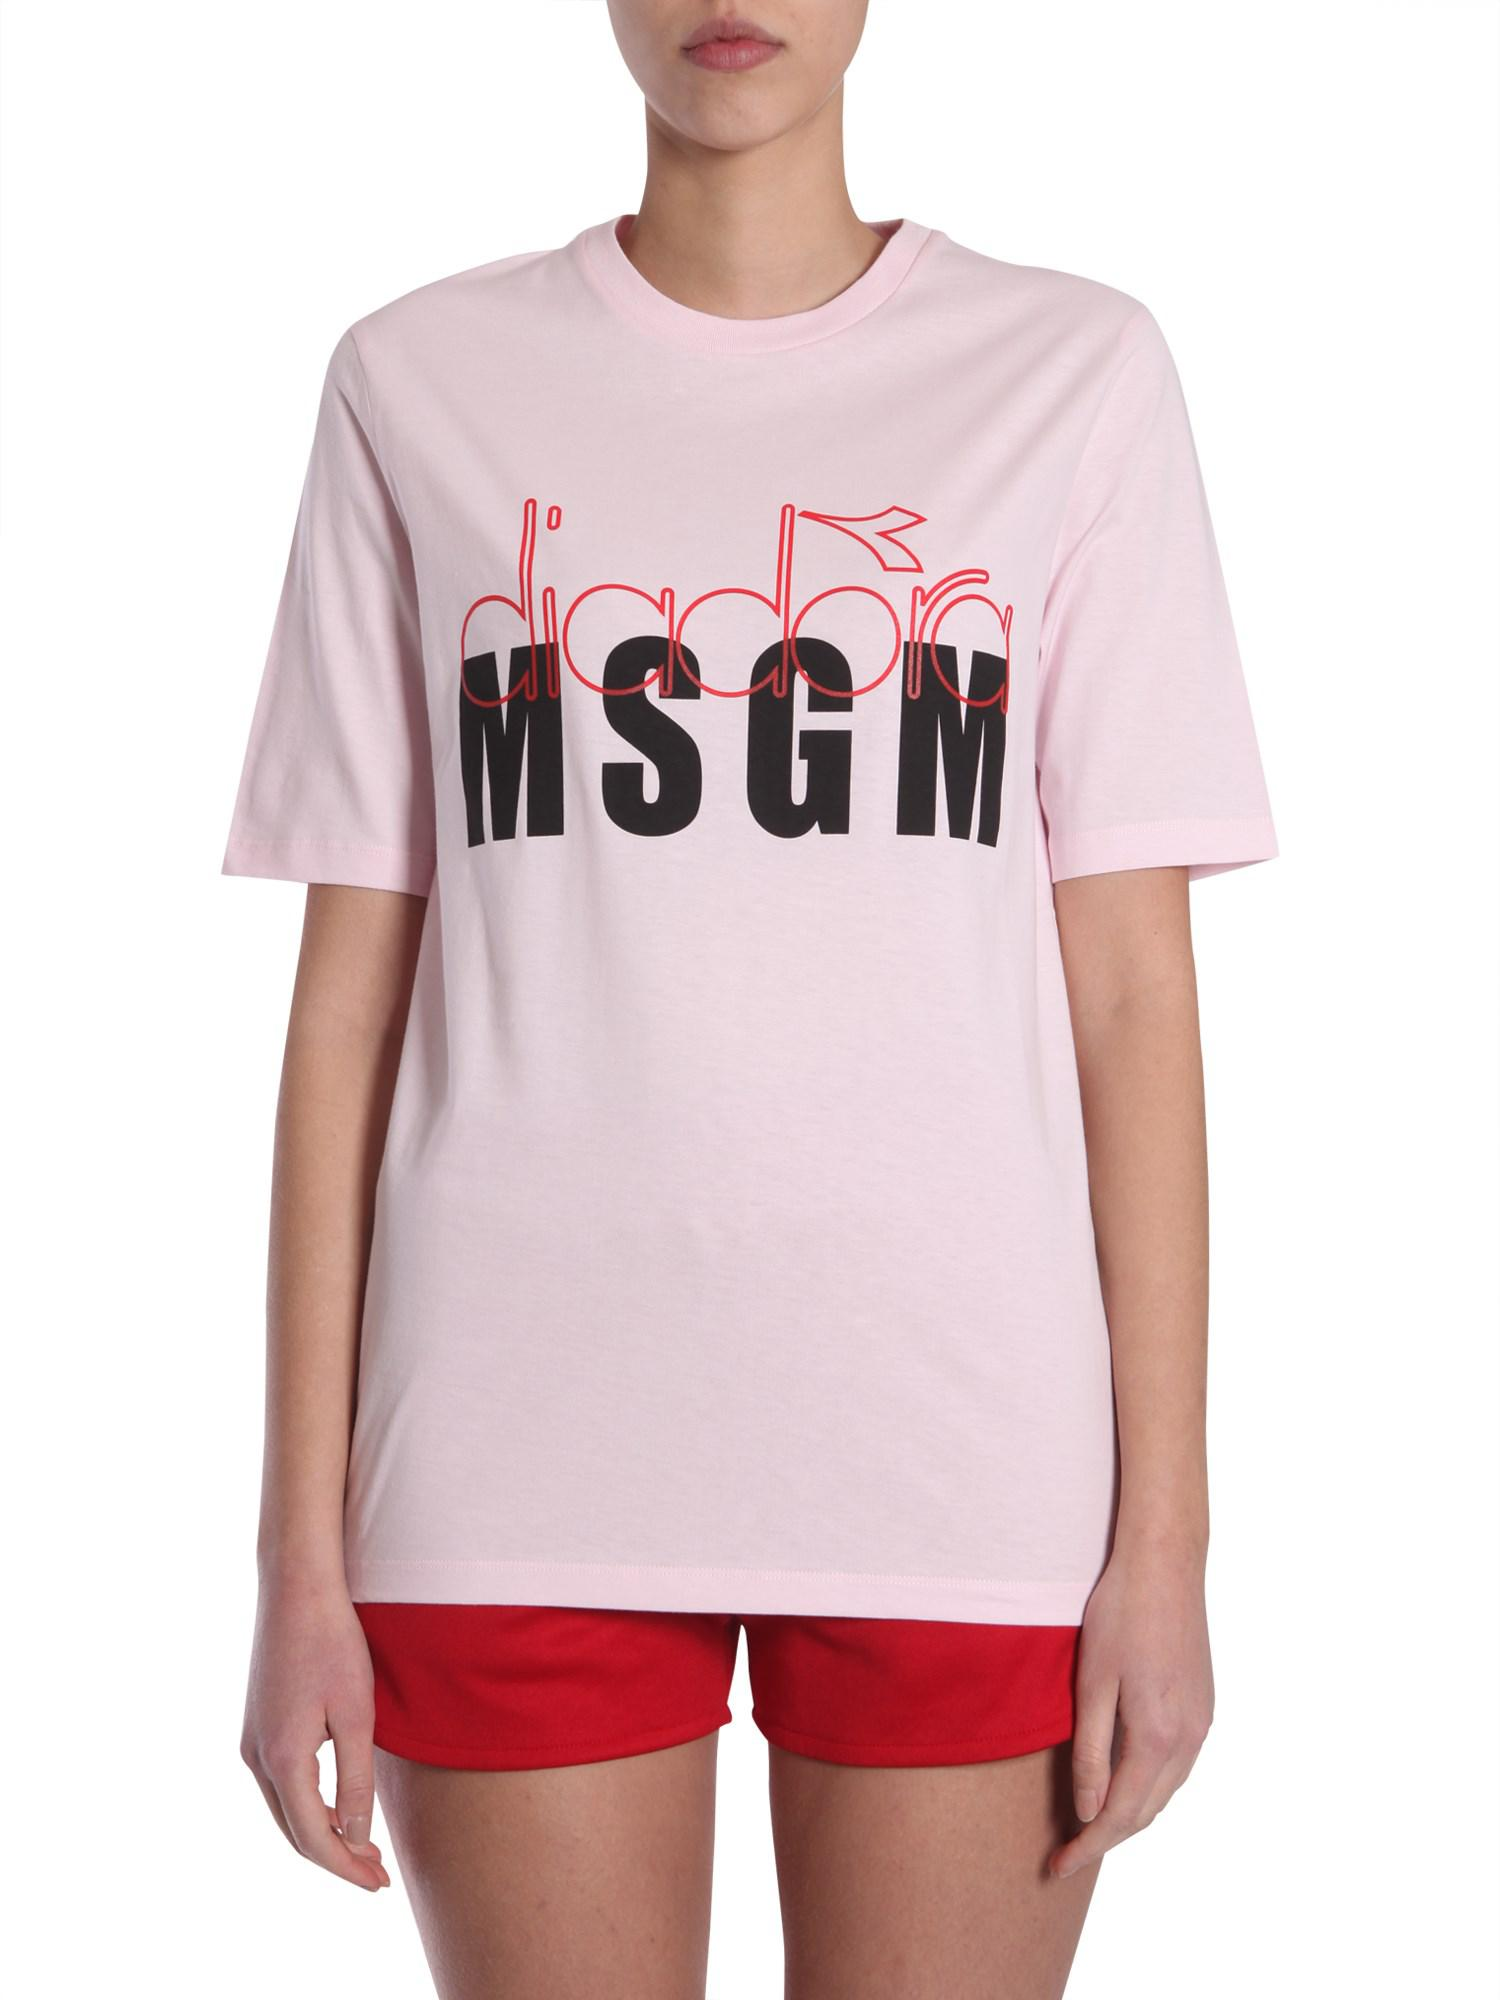 429b4a1dbd914d Gallery. Previously sold at  Eleonora Bonucci · Women s Summer T Shirts ...